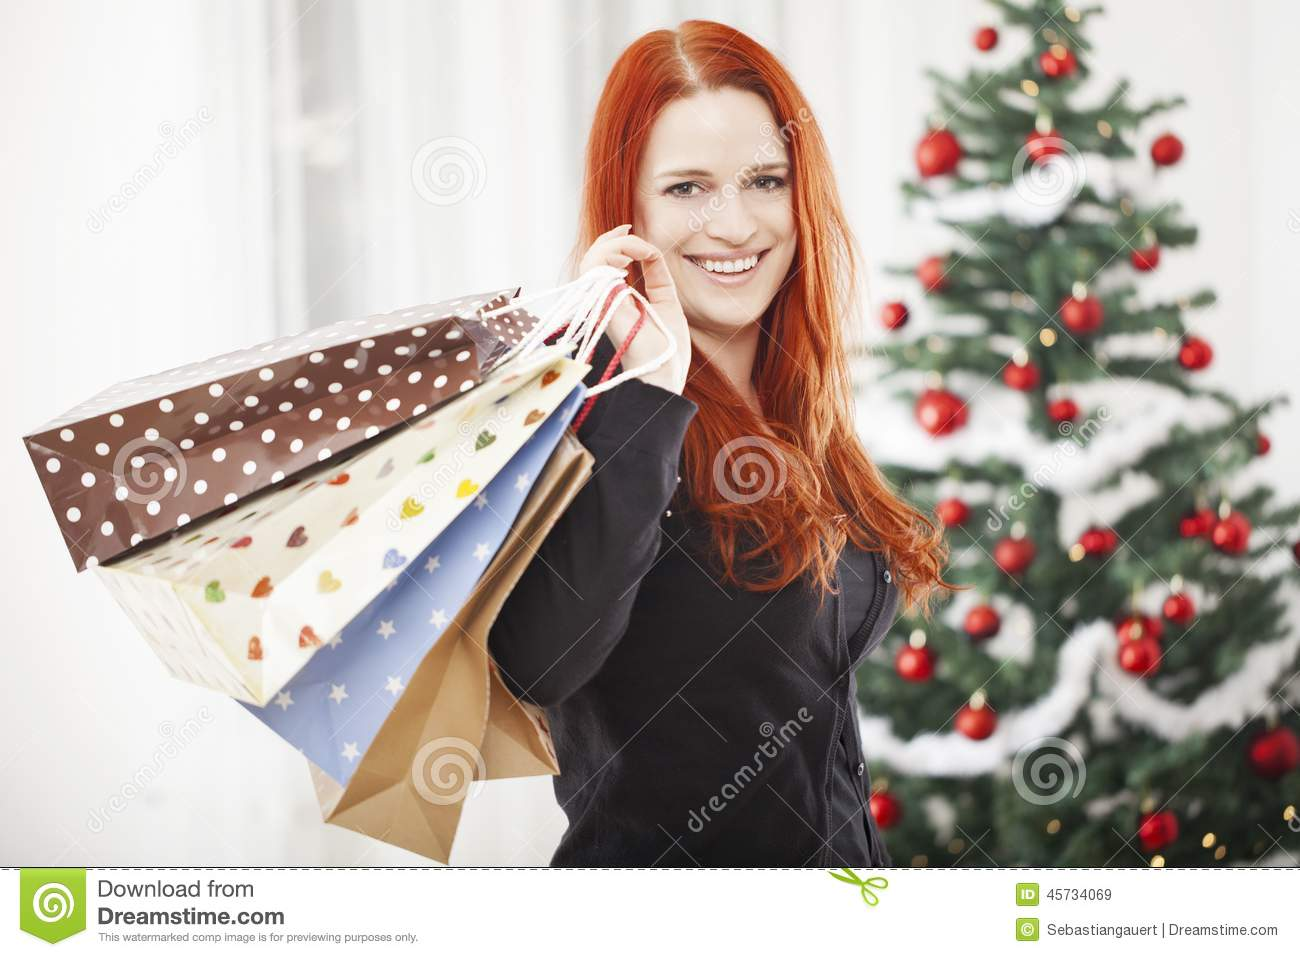 How to Feel Happy when Christmas Is Over forecasting